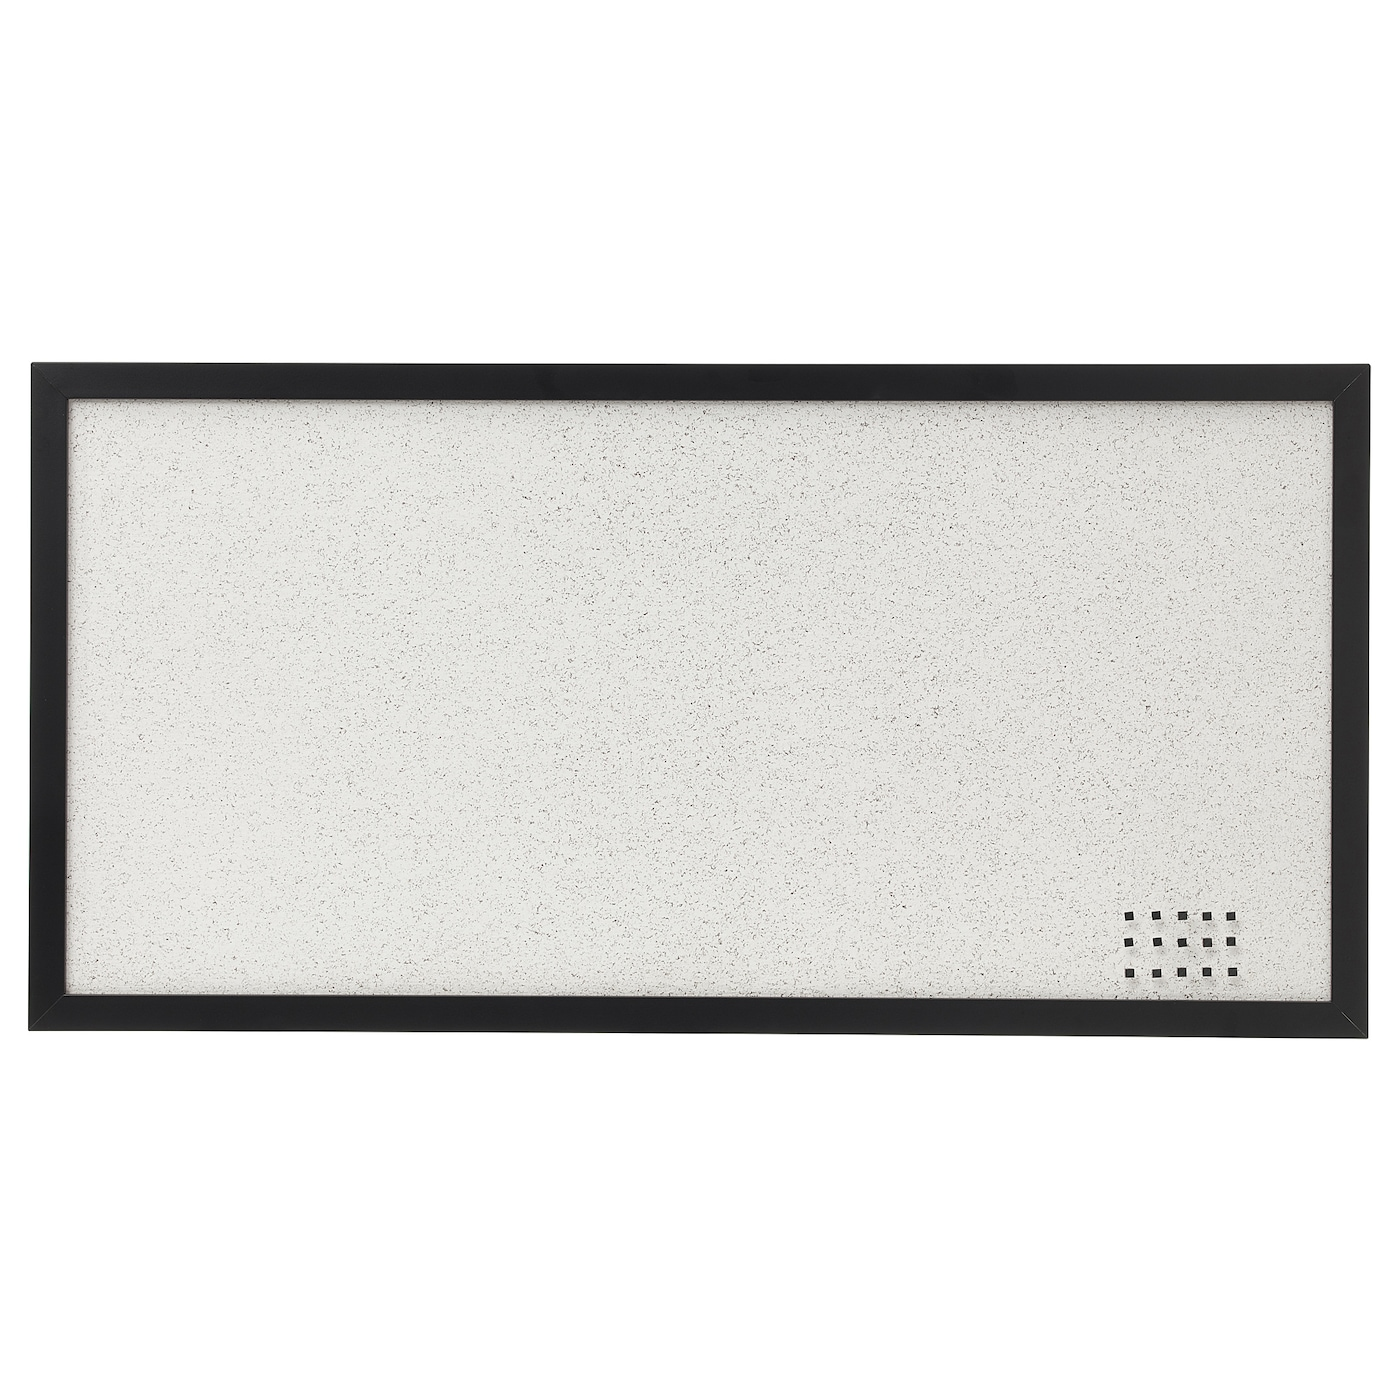 whiteboard notice boards ikea. Black Bedroom Furniture Sets. Home Design Ideas